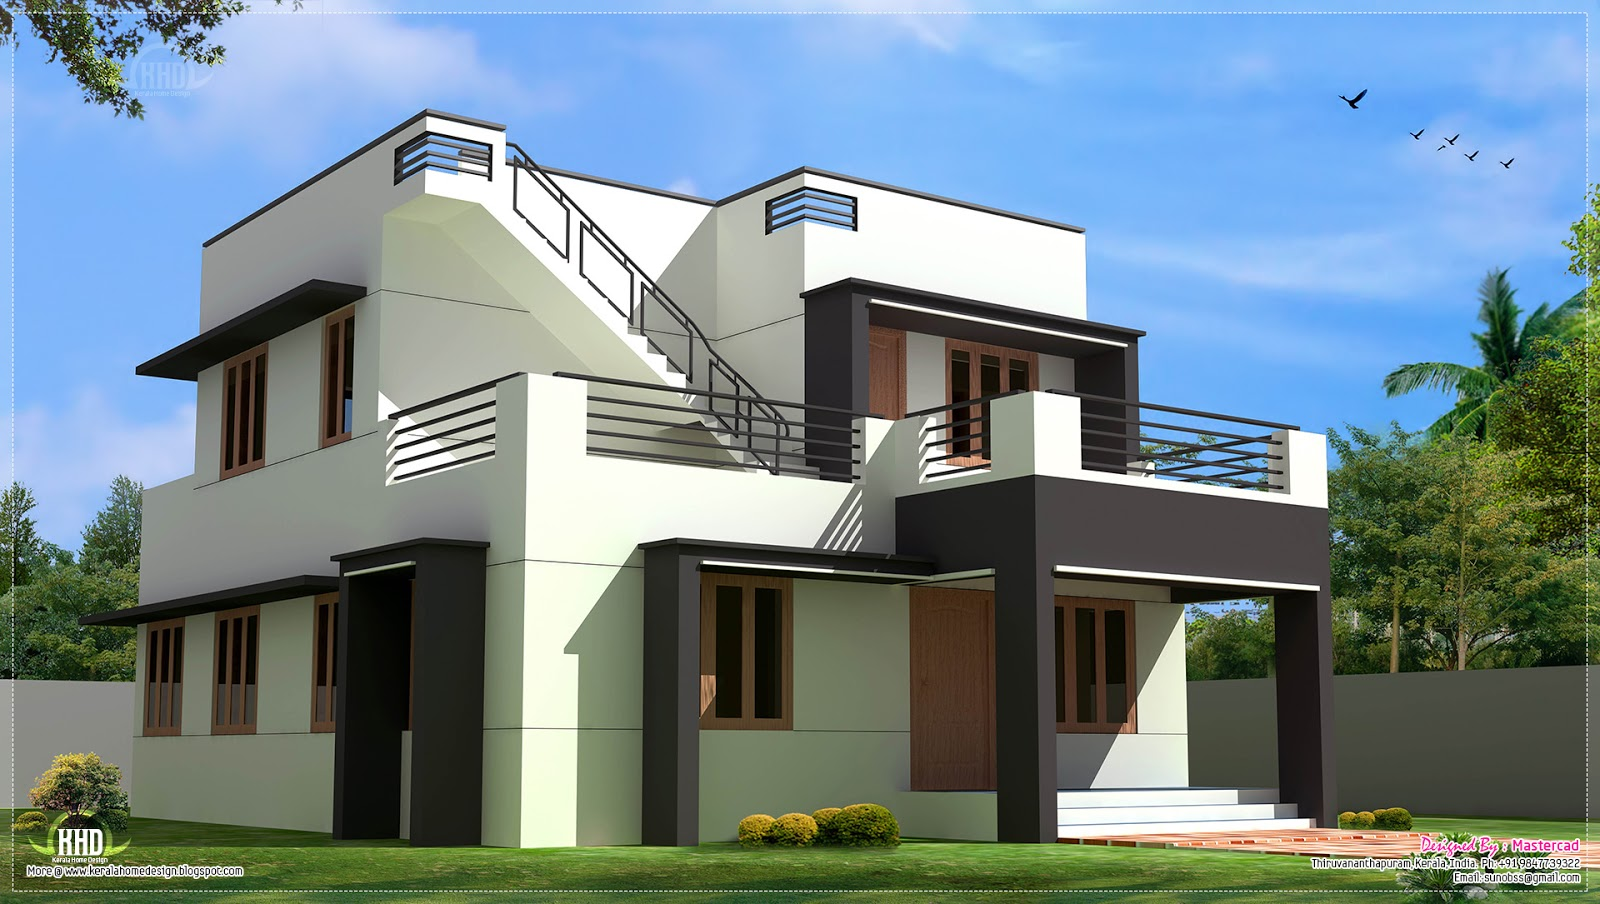 Modern House Design In 1700 House Design Plans